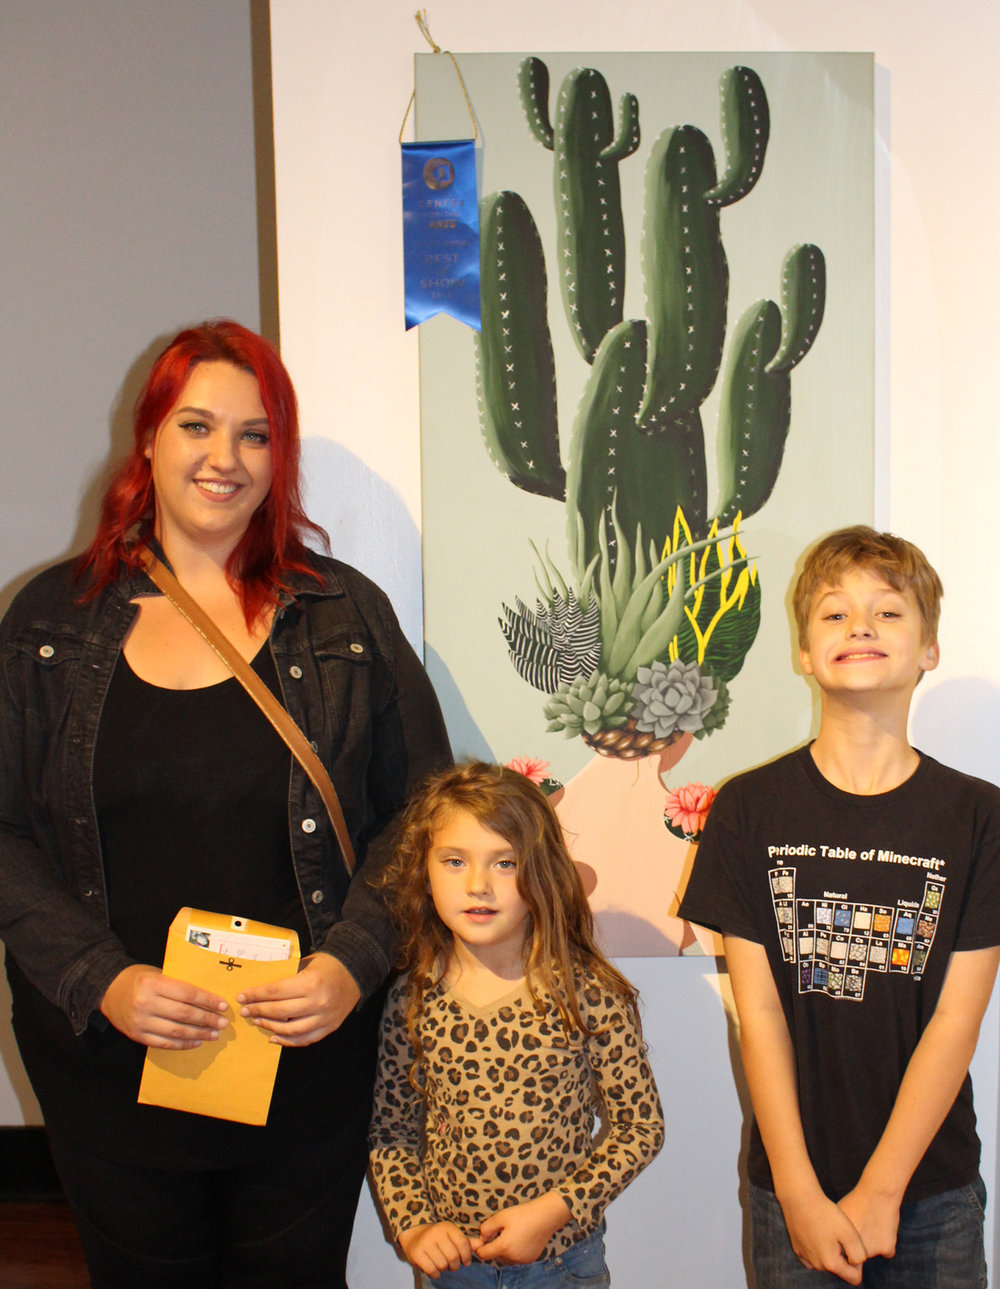 """Best Of Show winner Christence Taylor with her two children and the winning painting """"Guarded Girl"""". Congratulations Ms. Taylor on your win."""